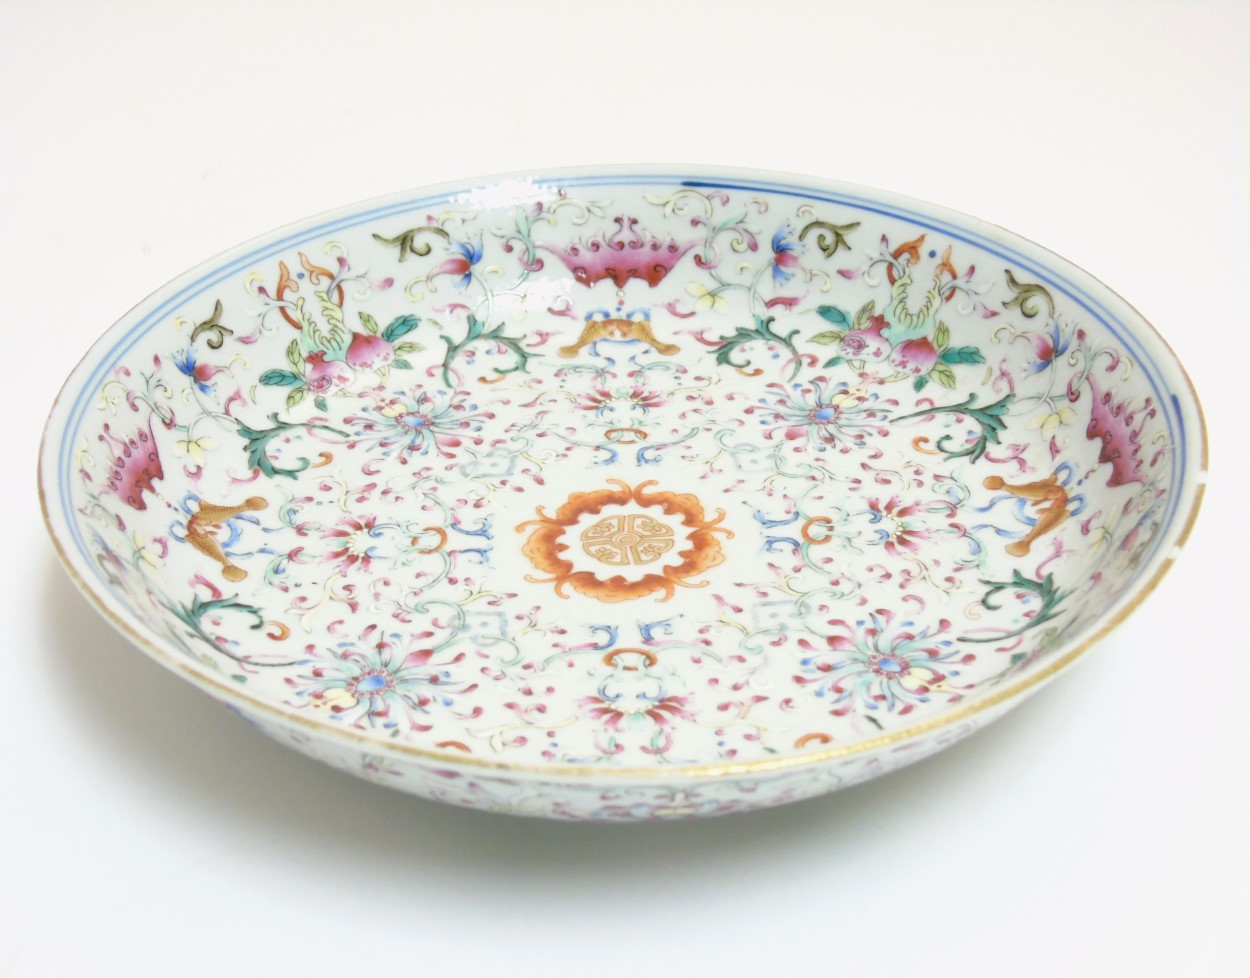 Lot 17 - A Chinese famille rose plate, decorated with scrolling lotus flowers, having bat,